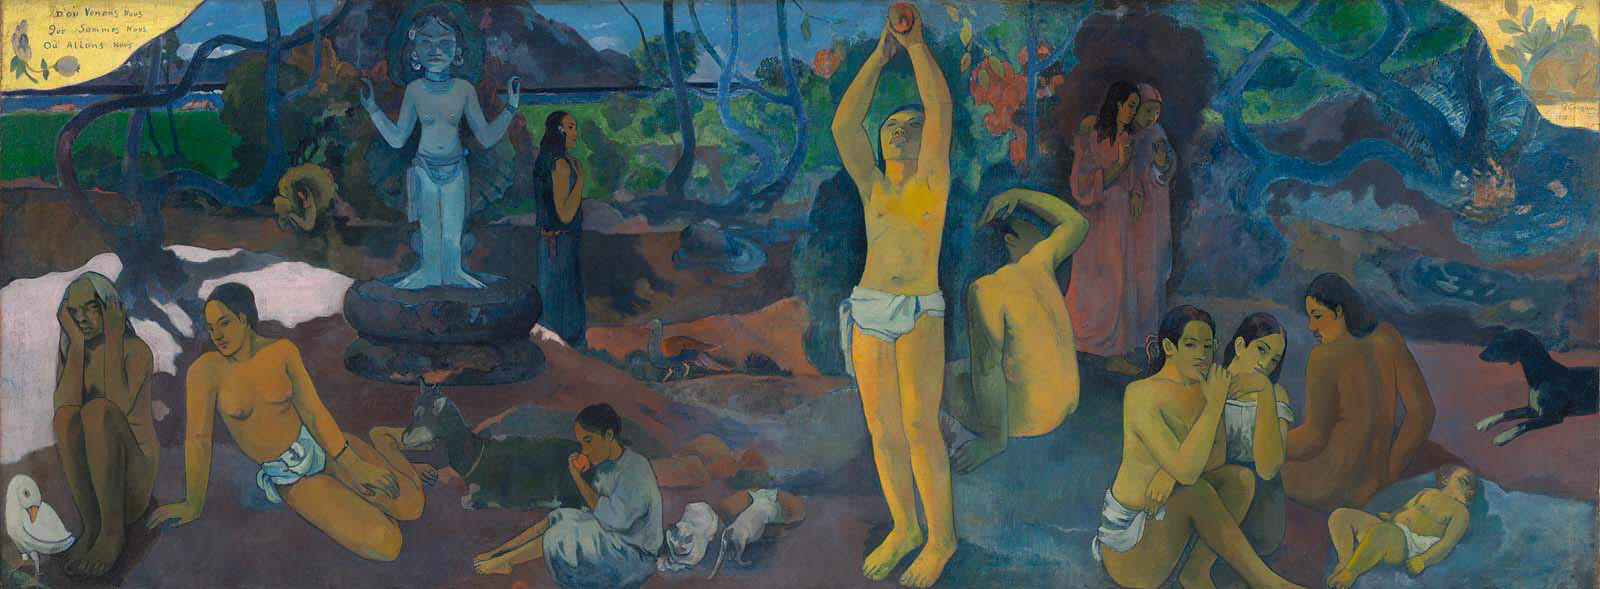 Paul Gauguin,  Where Do We Come From? What Are We? Where Are We Going?  1897-98, image from  MFA Boston